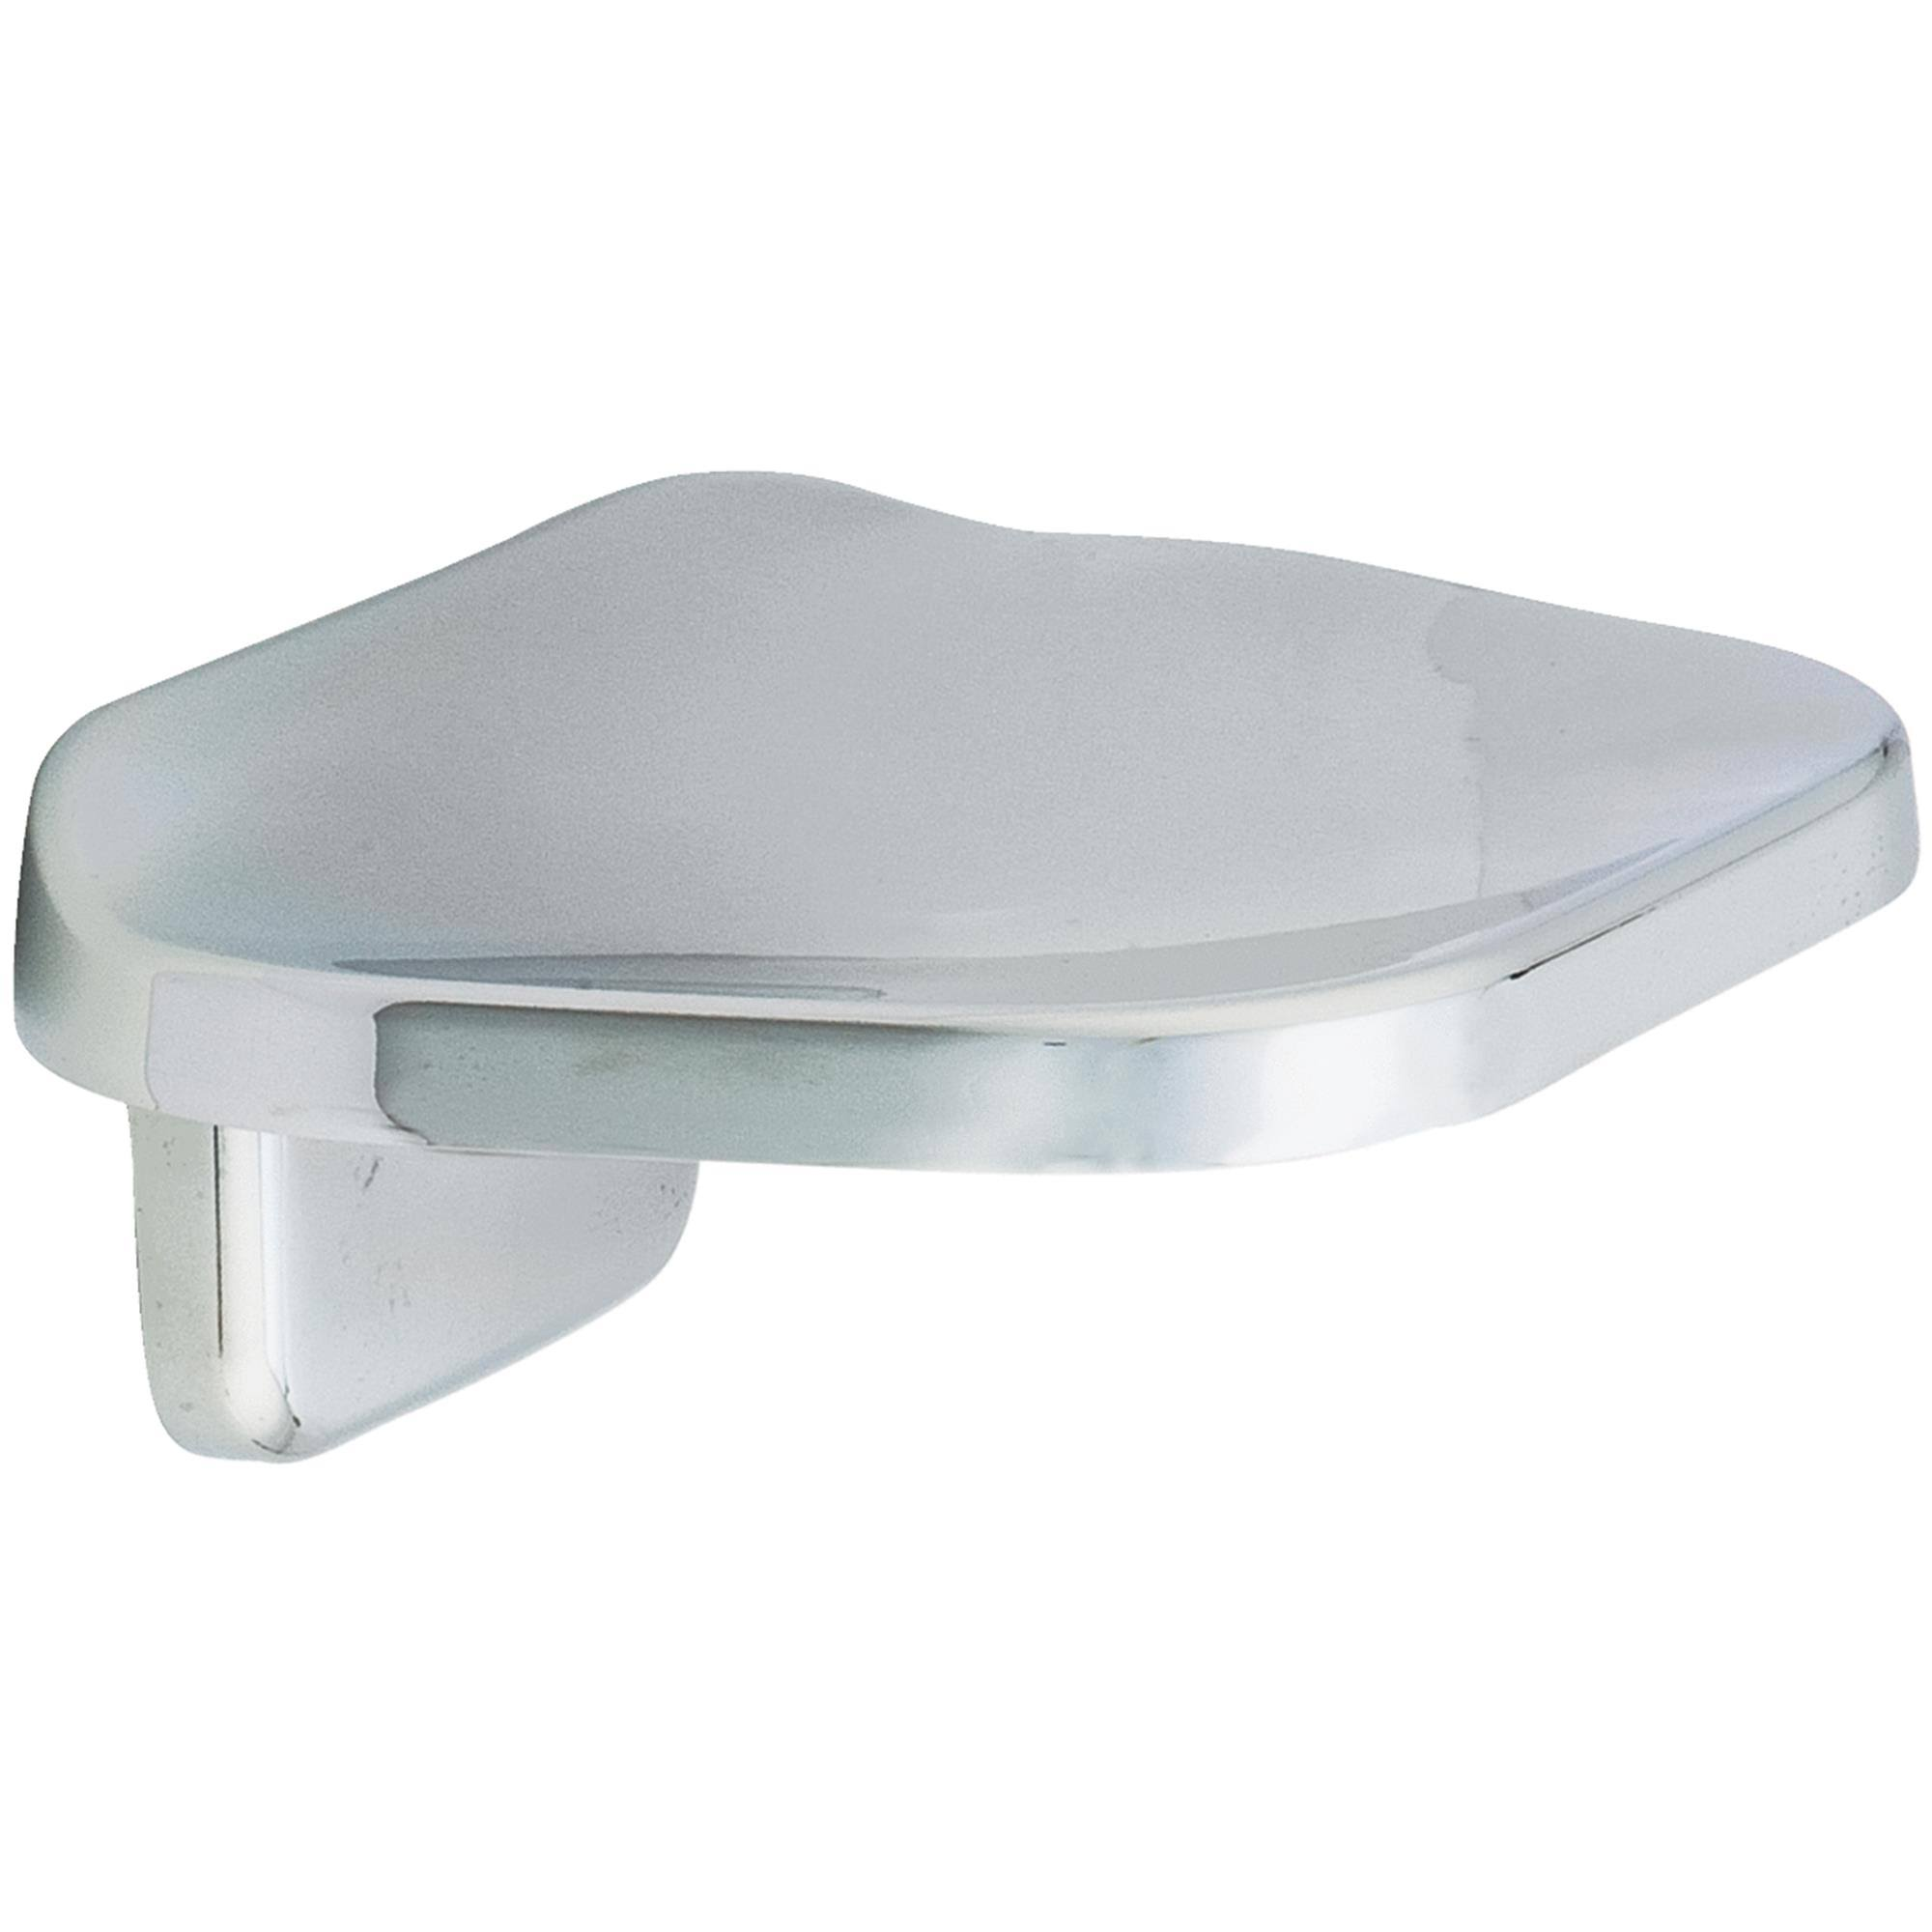 Sim Supply Soap Dish - Chrome